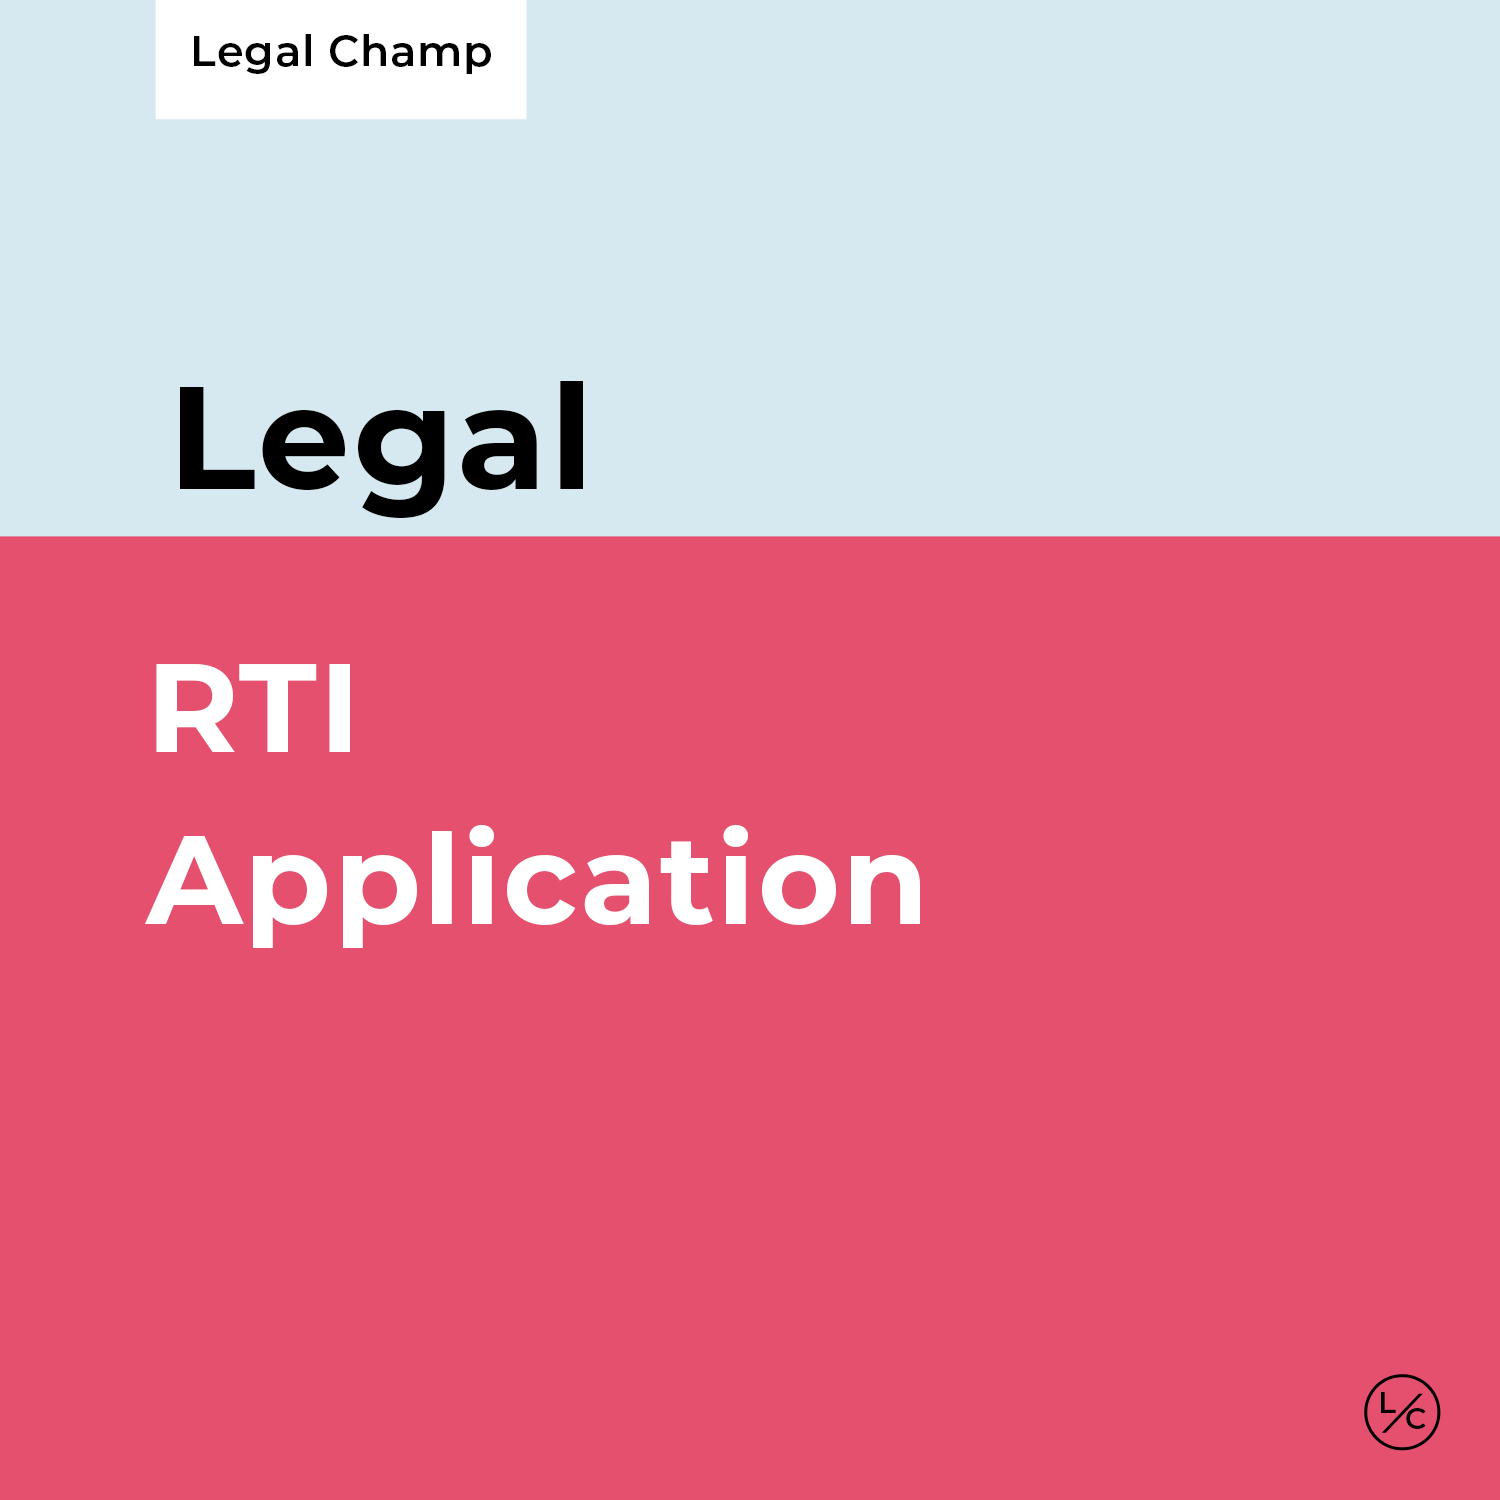 RTI Application